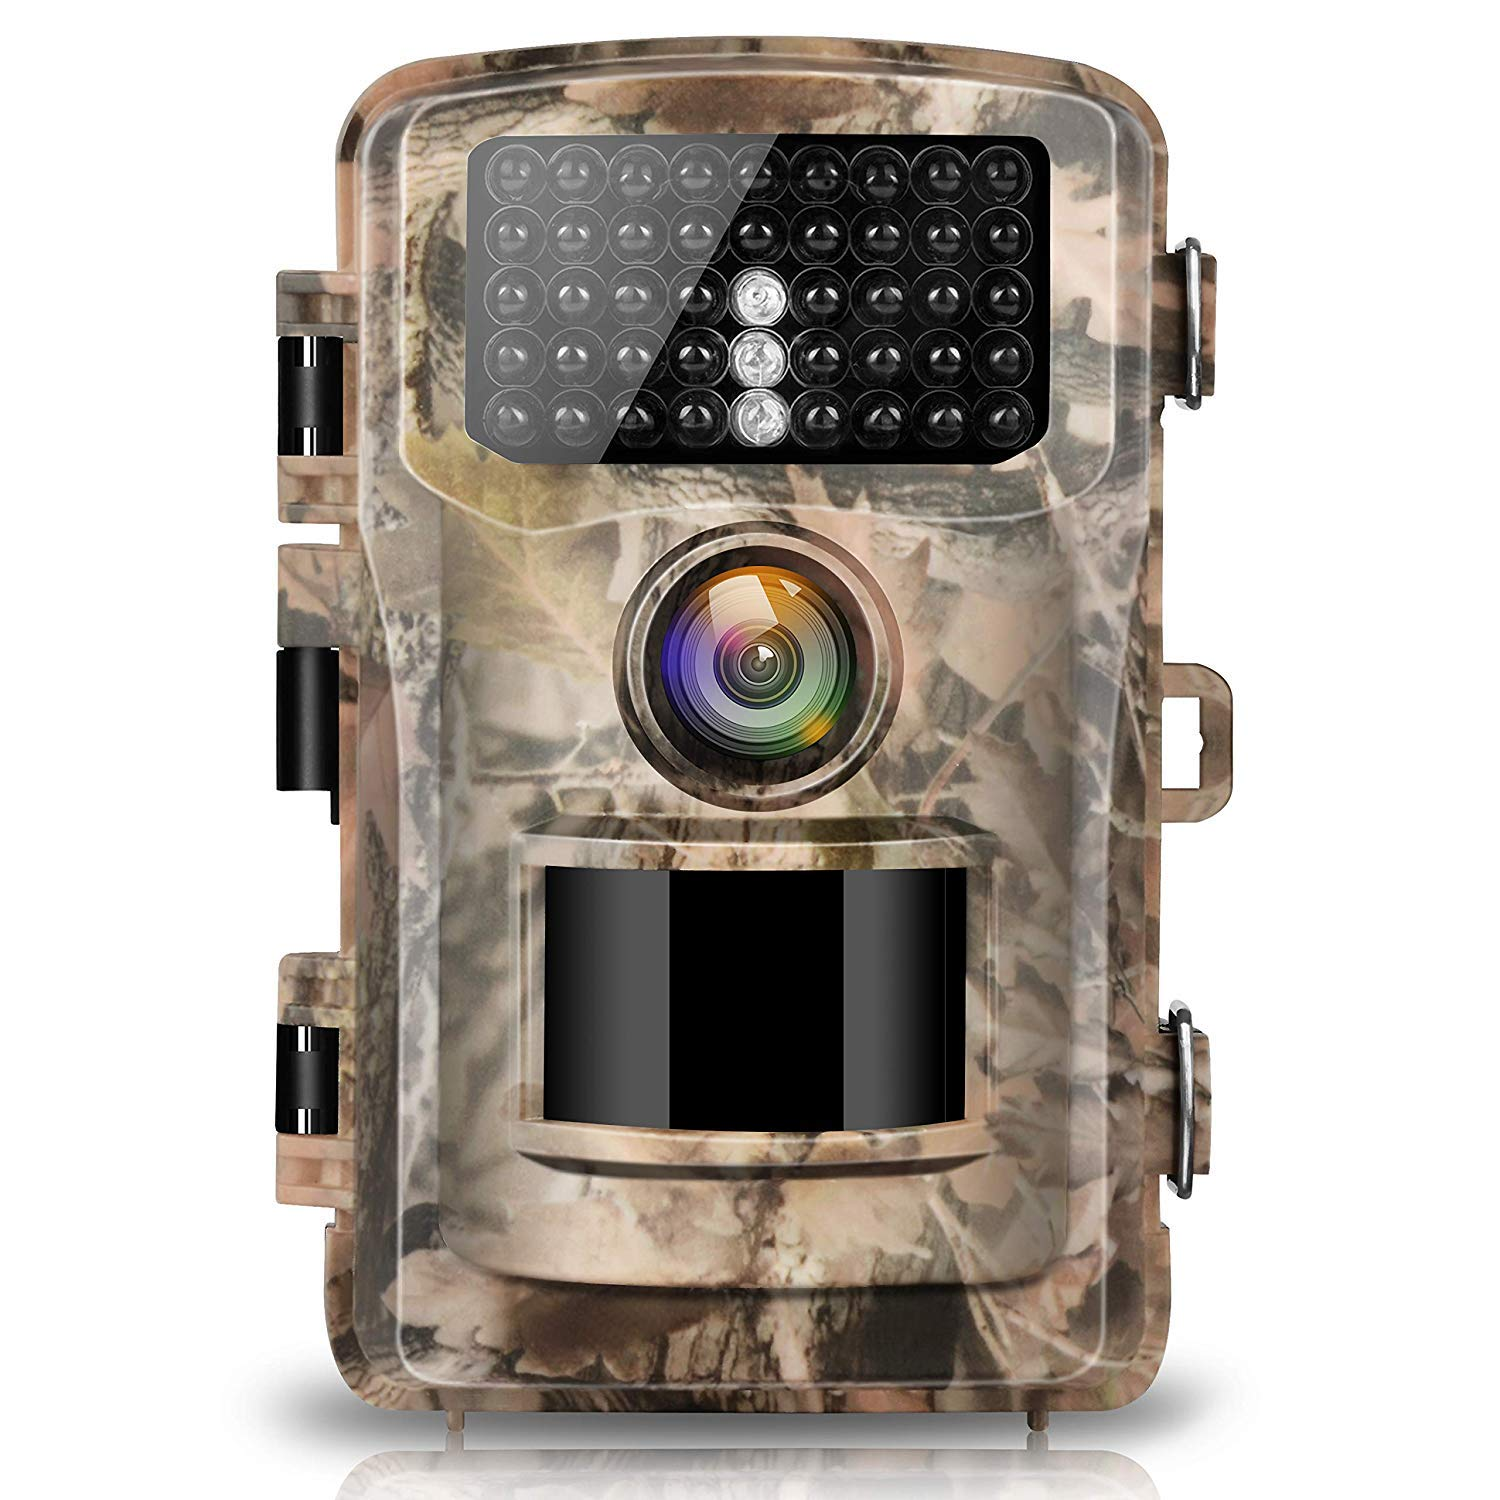 Campark Trail Camera 14MP 1080P 2.4'' LCD Game & Hunting Camera with 42pcs IR LEDs Infrared Night Vision up to 75ft/23m IP56 Waterproof for Wildlife Animal Scouting Digital Surveillance by Campark